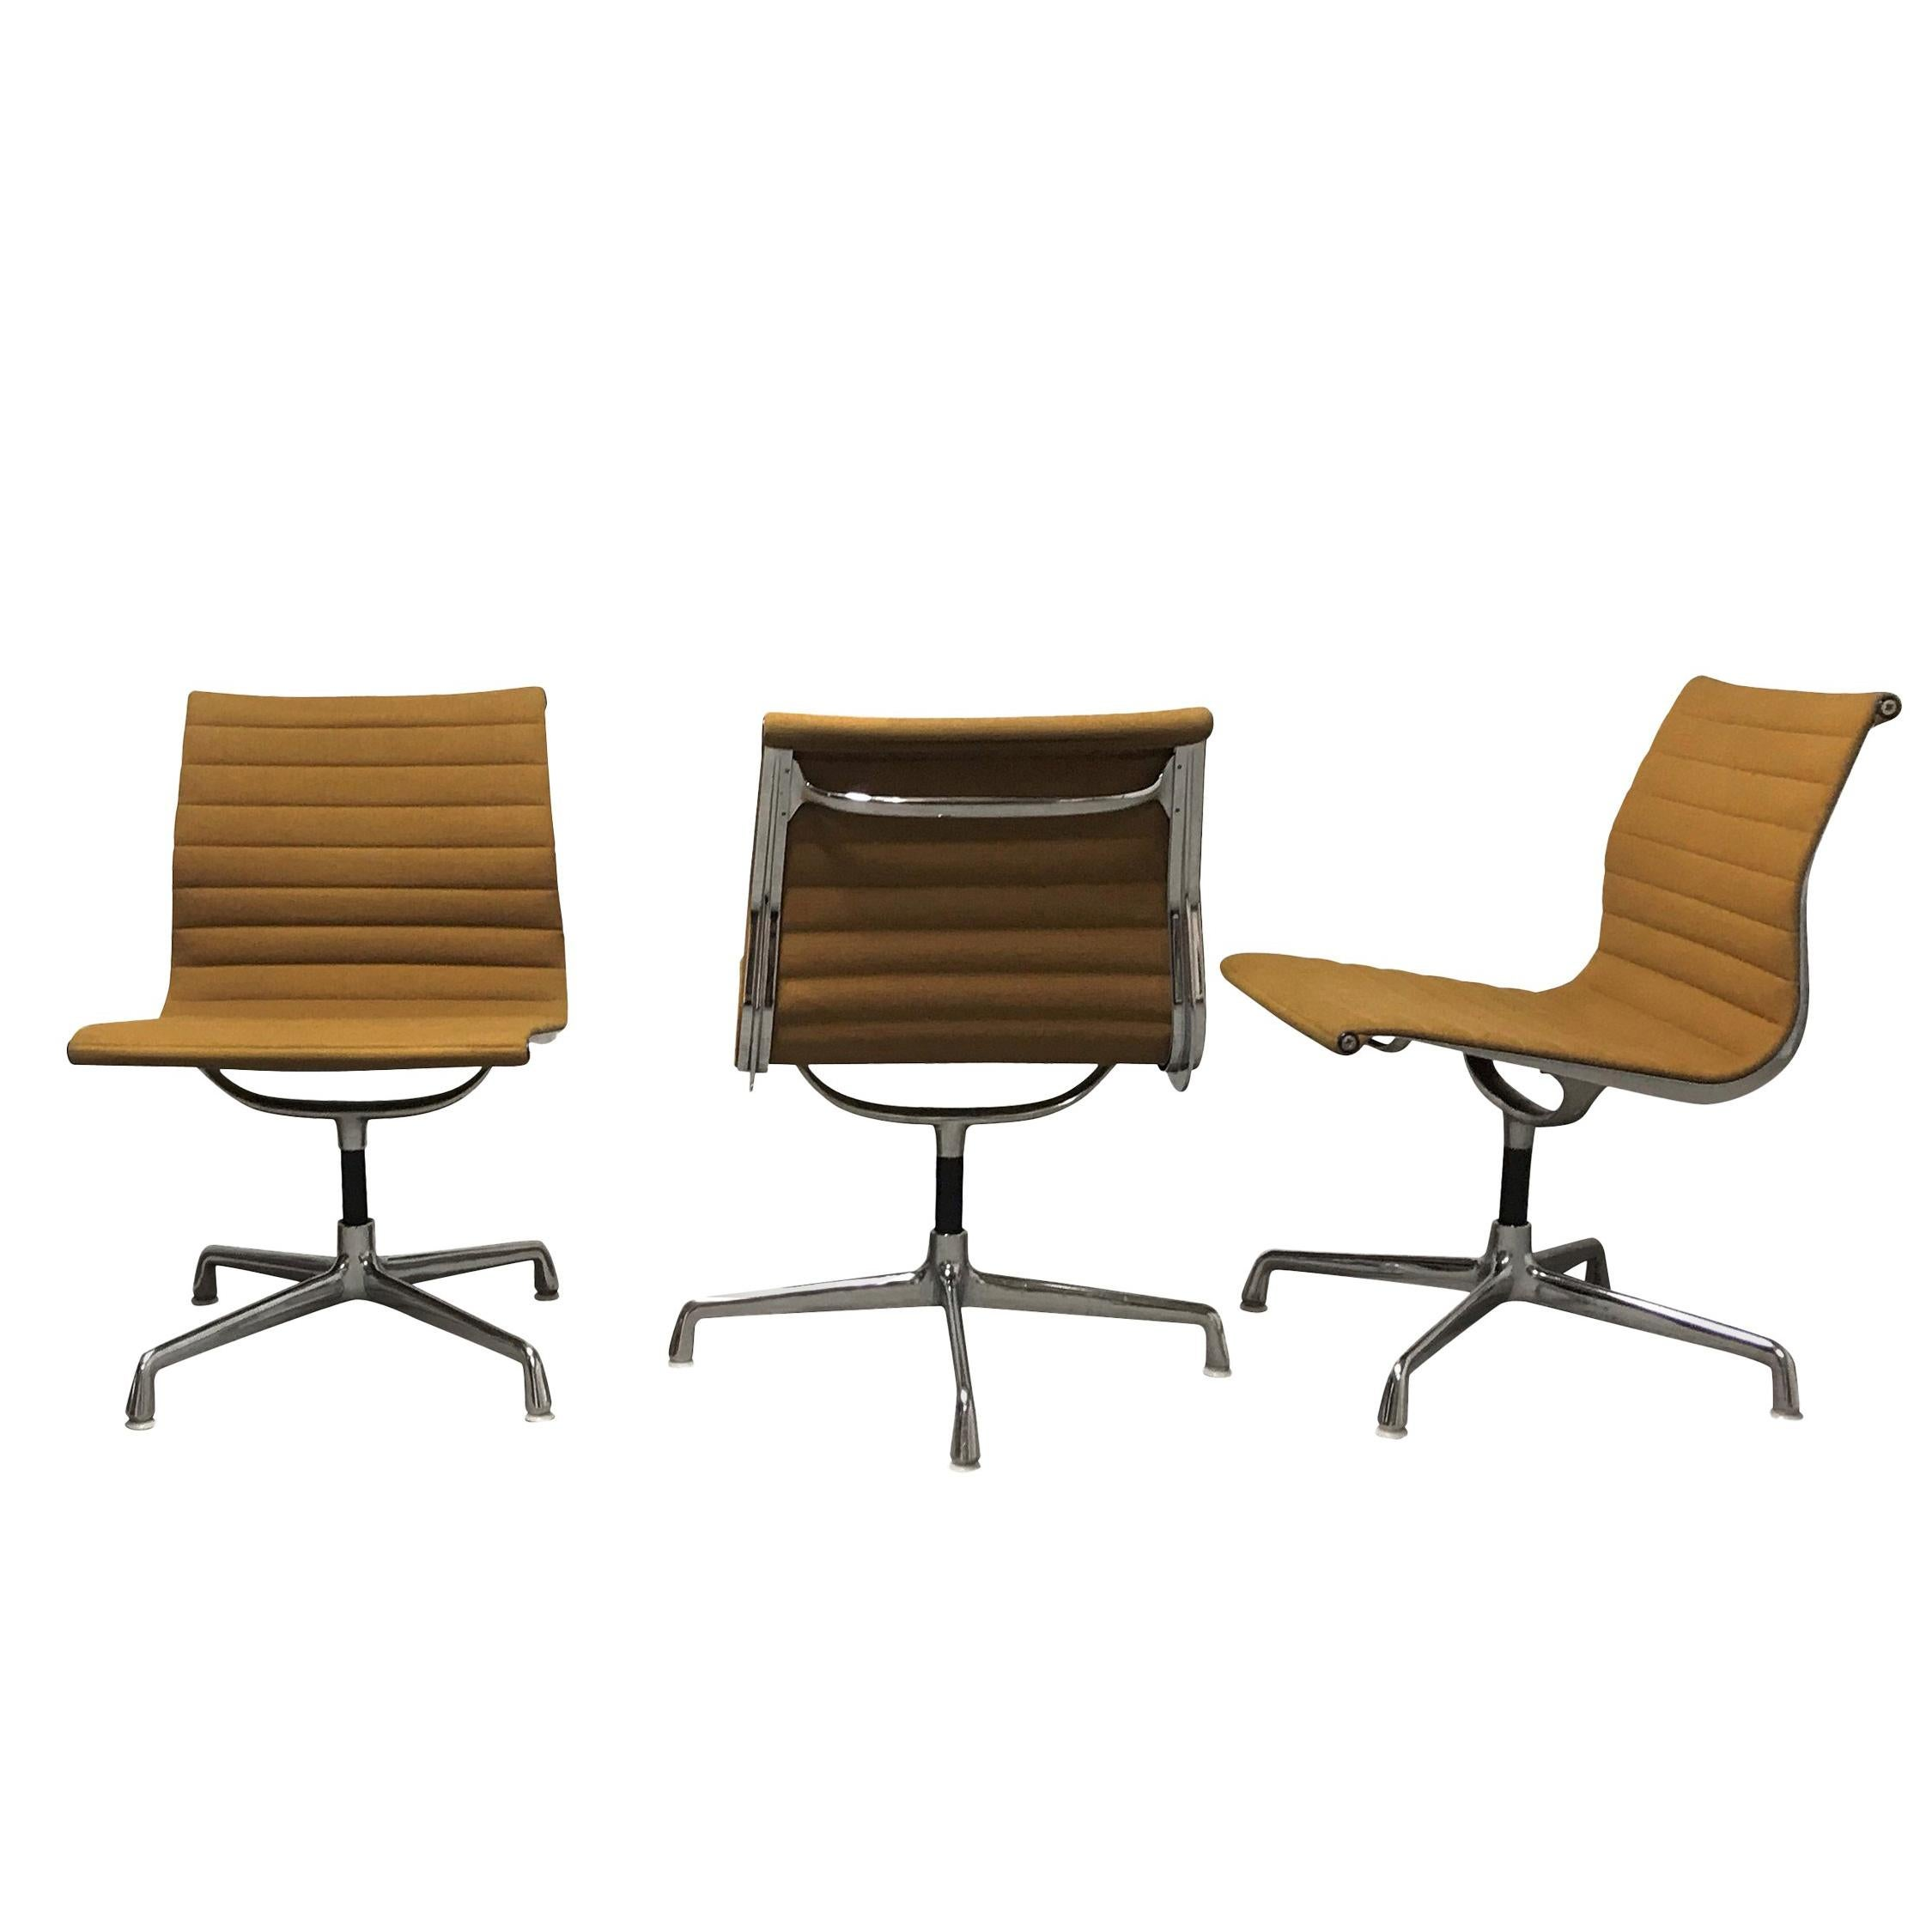 Charmant Vintage Eames Desk Chair EA108 For Herman Miller, Yellow, 1970s For Sale